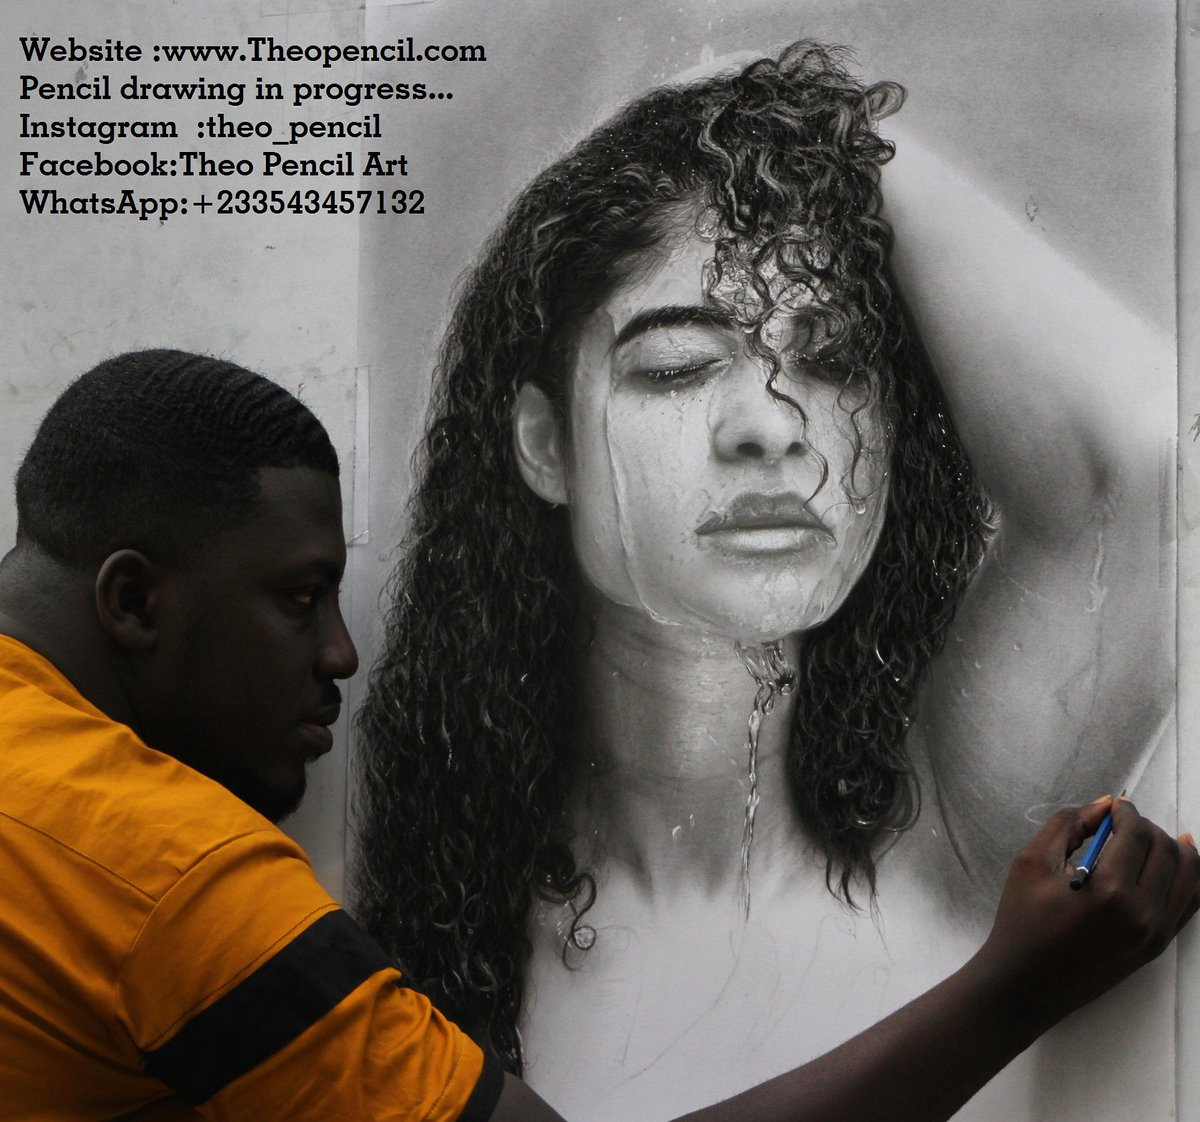 Theo pencil on twitter pencil drawing in progress by theopencil websitehttps t co wkzhc5sdp9 whatsapp 233543457132